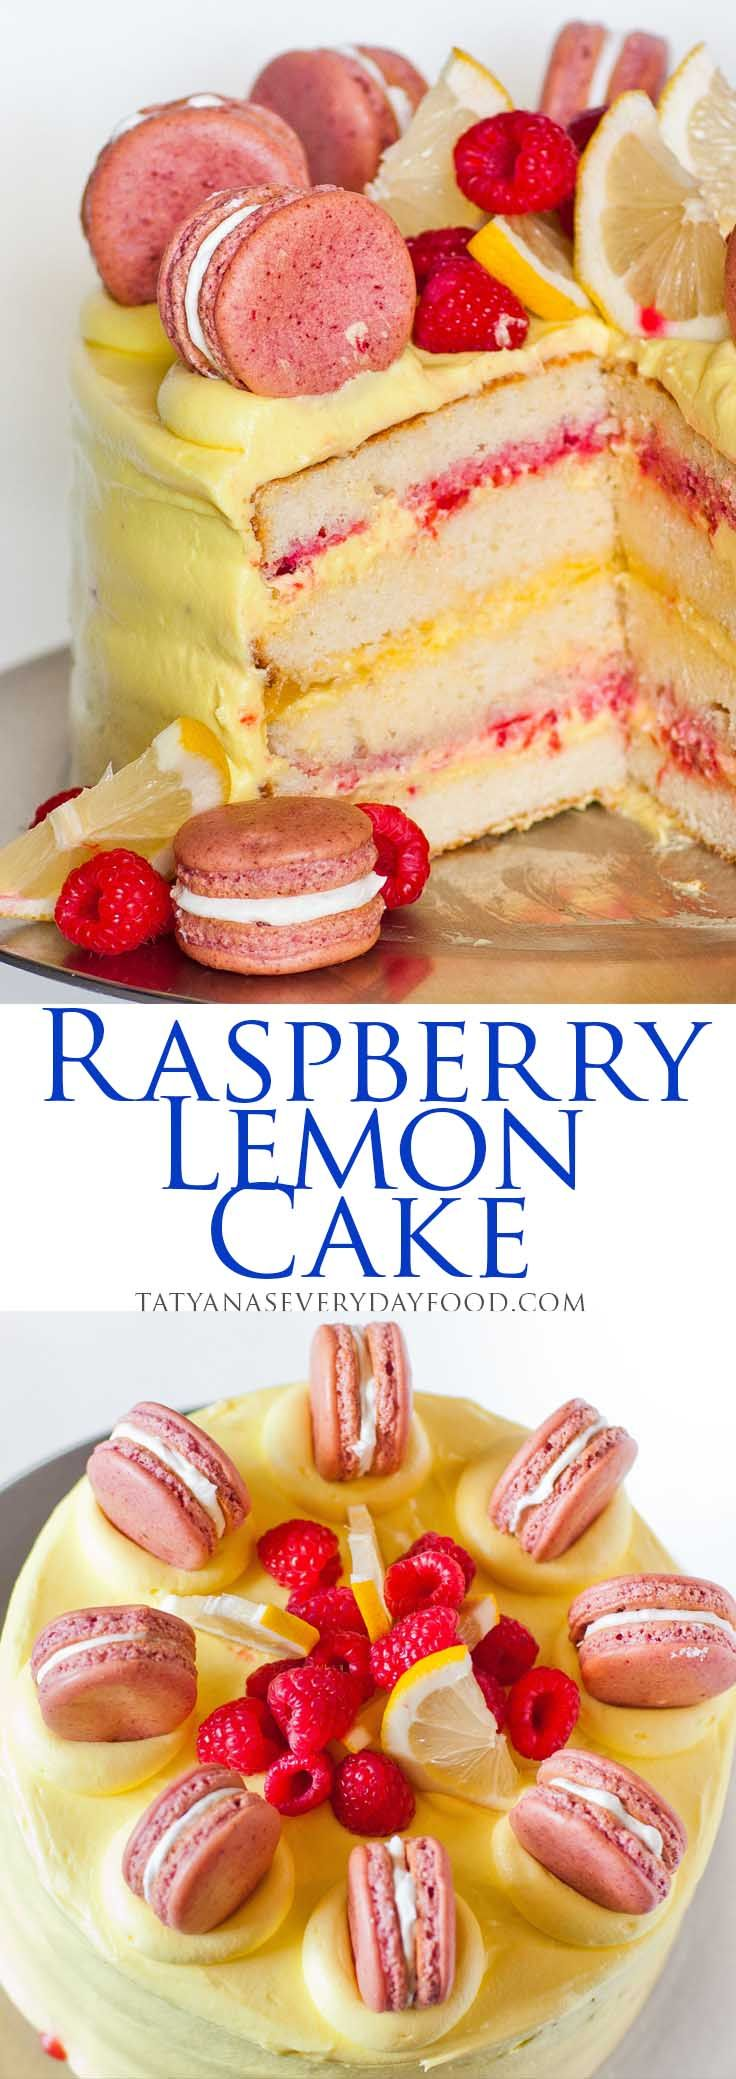 White chocolate cake layers are filled with fresh raspberries and lemon curd and frosted in a tart, lemon butter cream!  This show-stopping cake brings together sweet and tart flavors, creating a delightful symphony in your mouth! Top the cake off with raspberry macarons for a fabulous presentation! For all the recipe details, watch my video […]